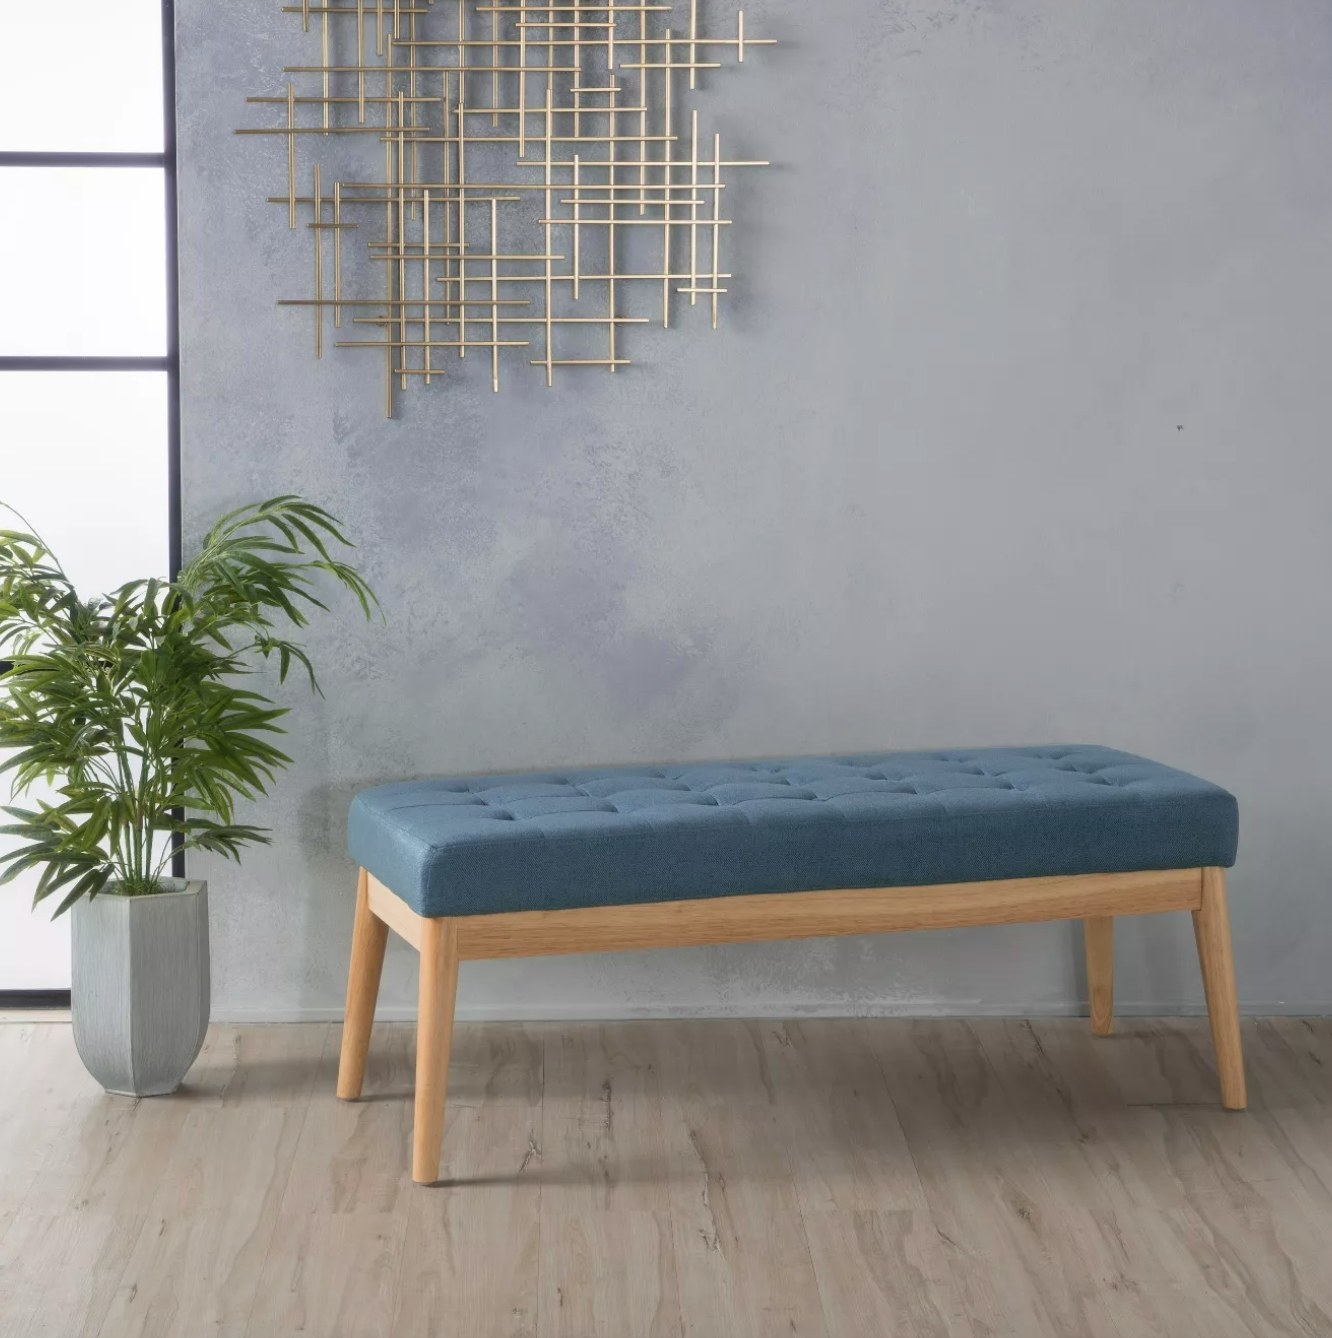 The upholstered bench in blue